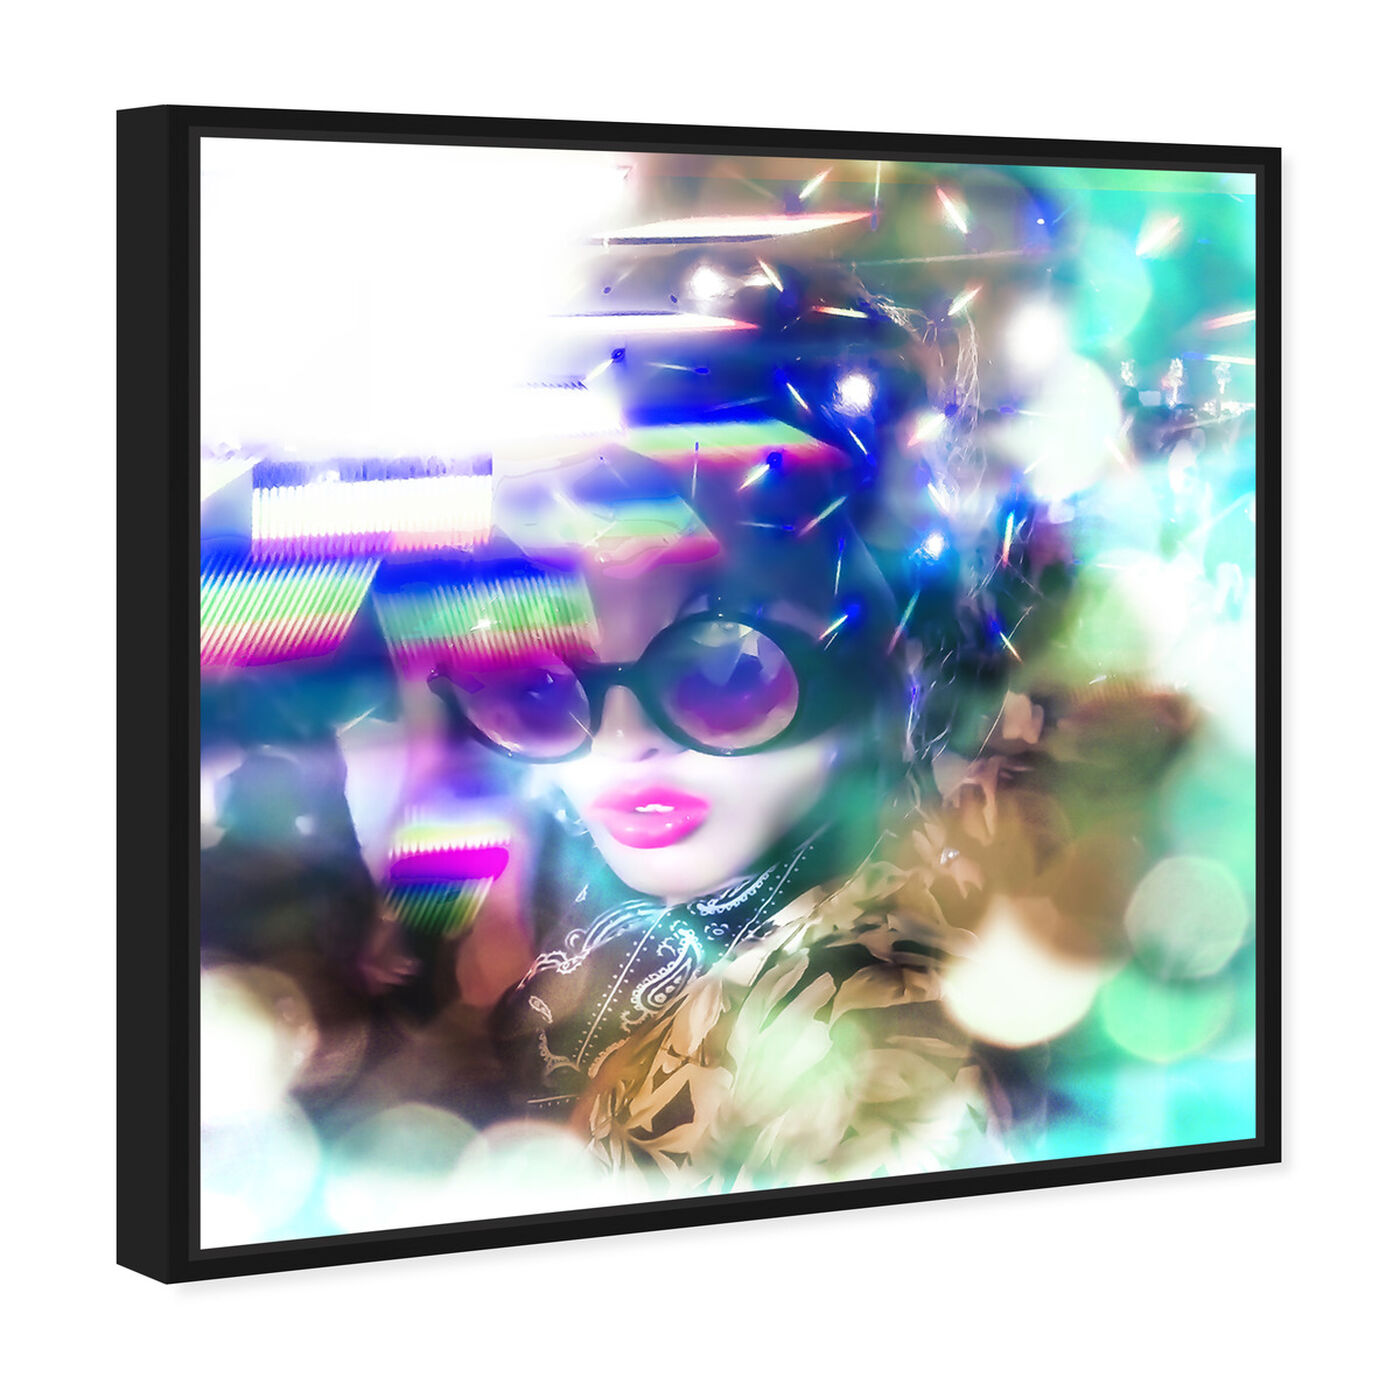 Angled view of Curro Cardenal - Neon Rave featuring fashion and glam and portraits art.